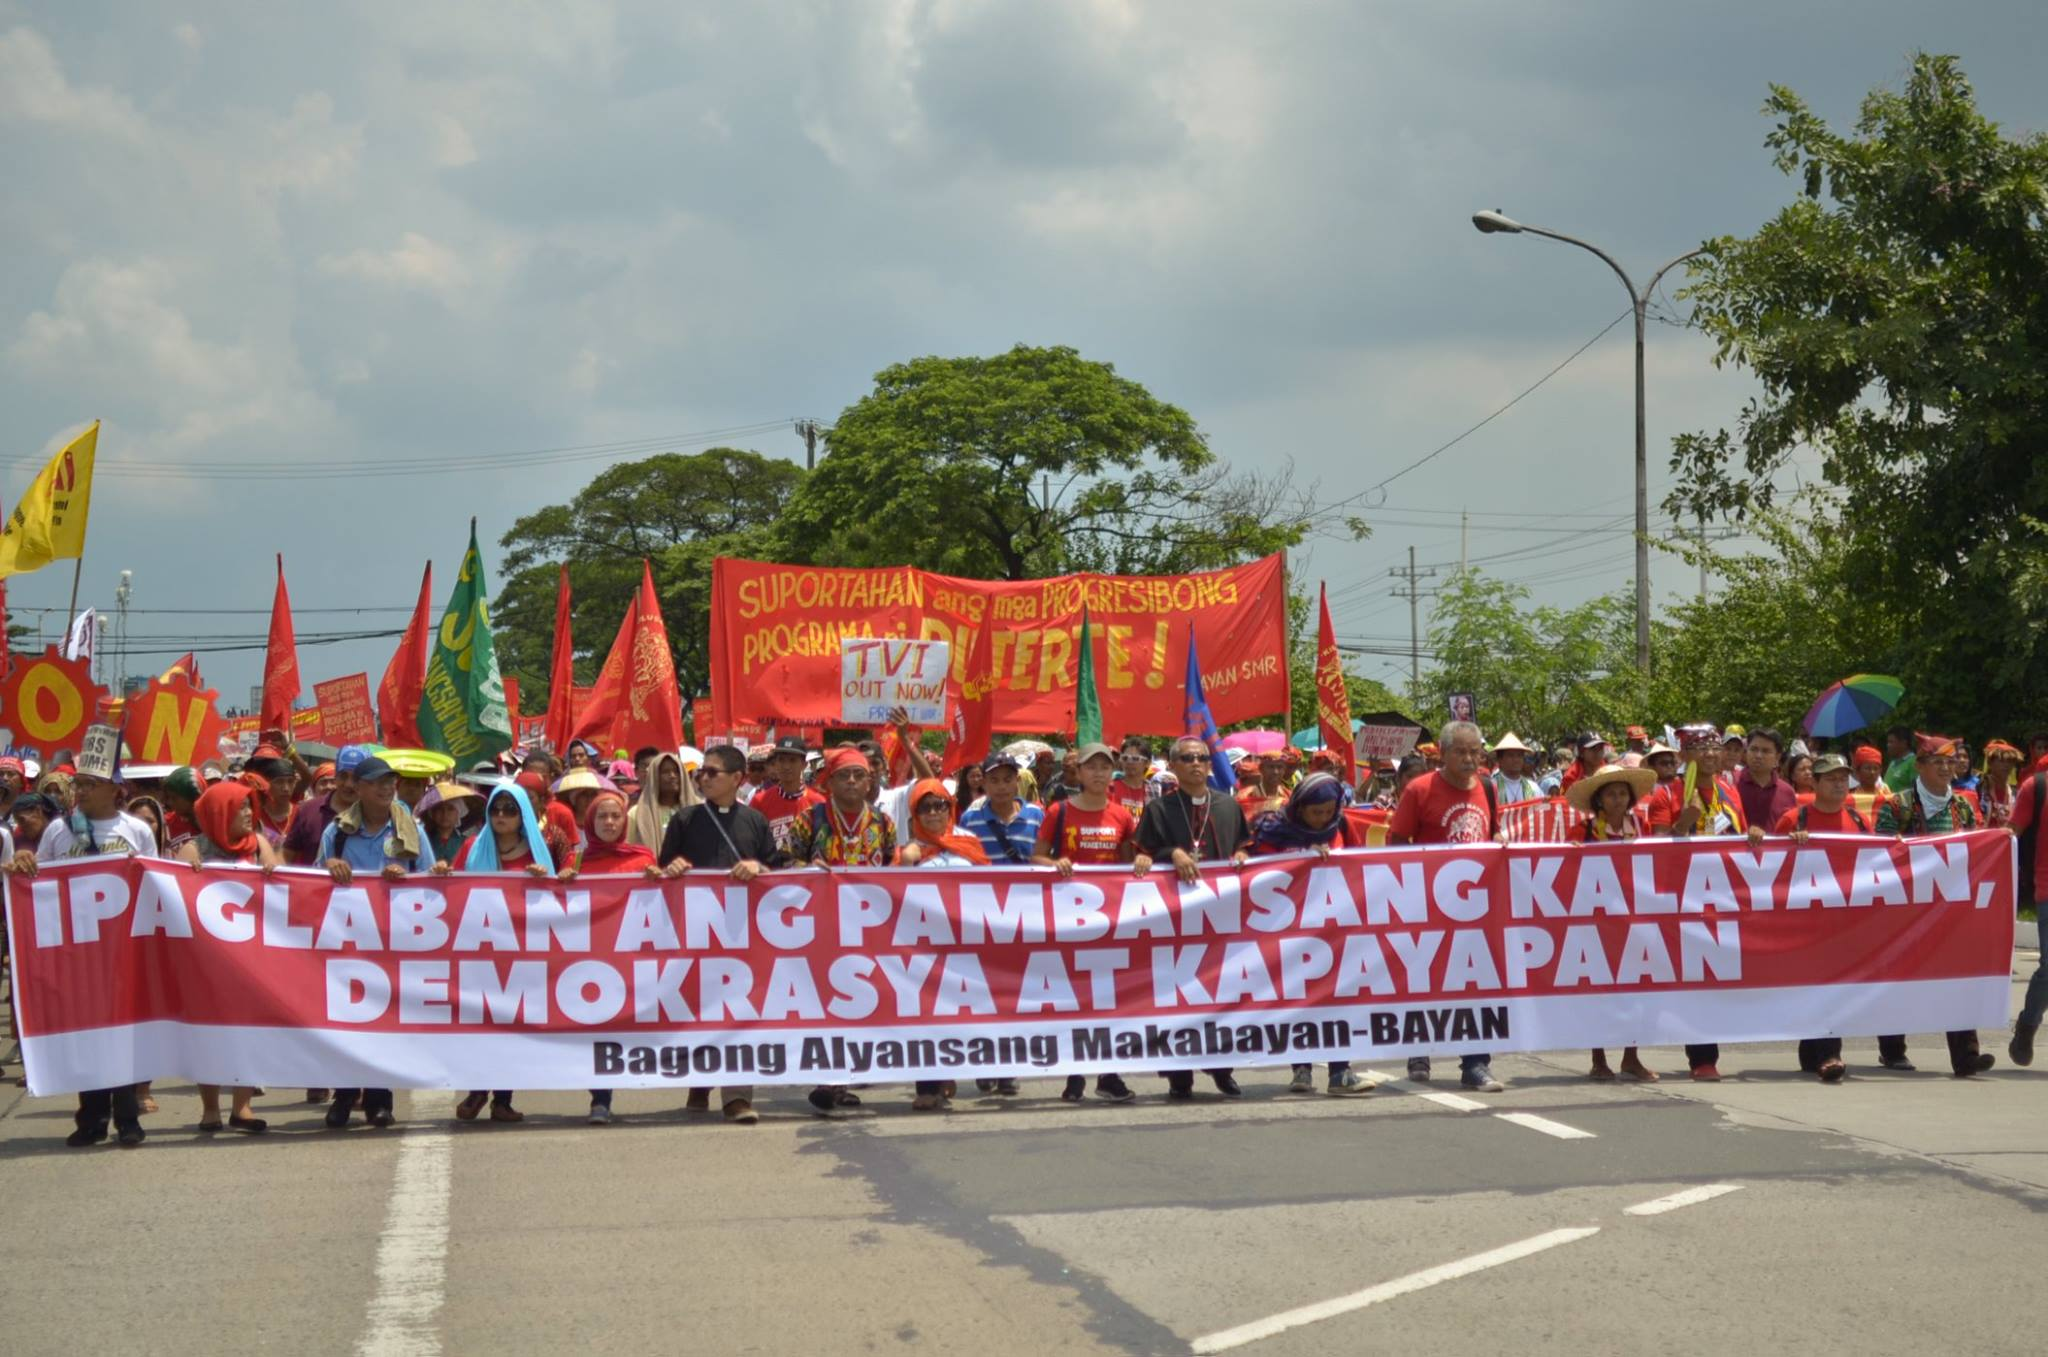 ICPRP participants, together with thousands who participated in the 'Manilakbayan' protest caravan, converged at a 40,000-strong people's mobilization in Metro Manila pushing for a National People's Agenda for Change. Photo by Loi Manalansan/Kalikasan PNE